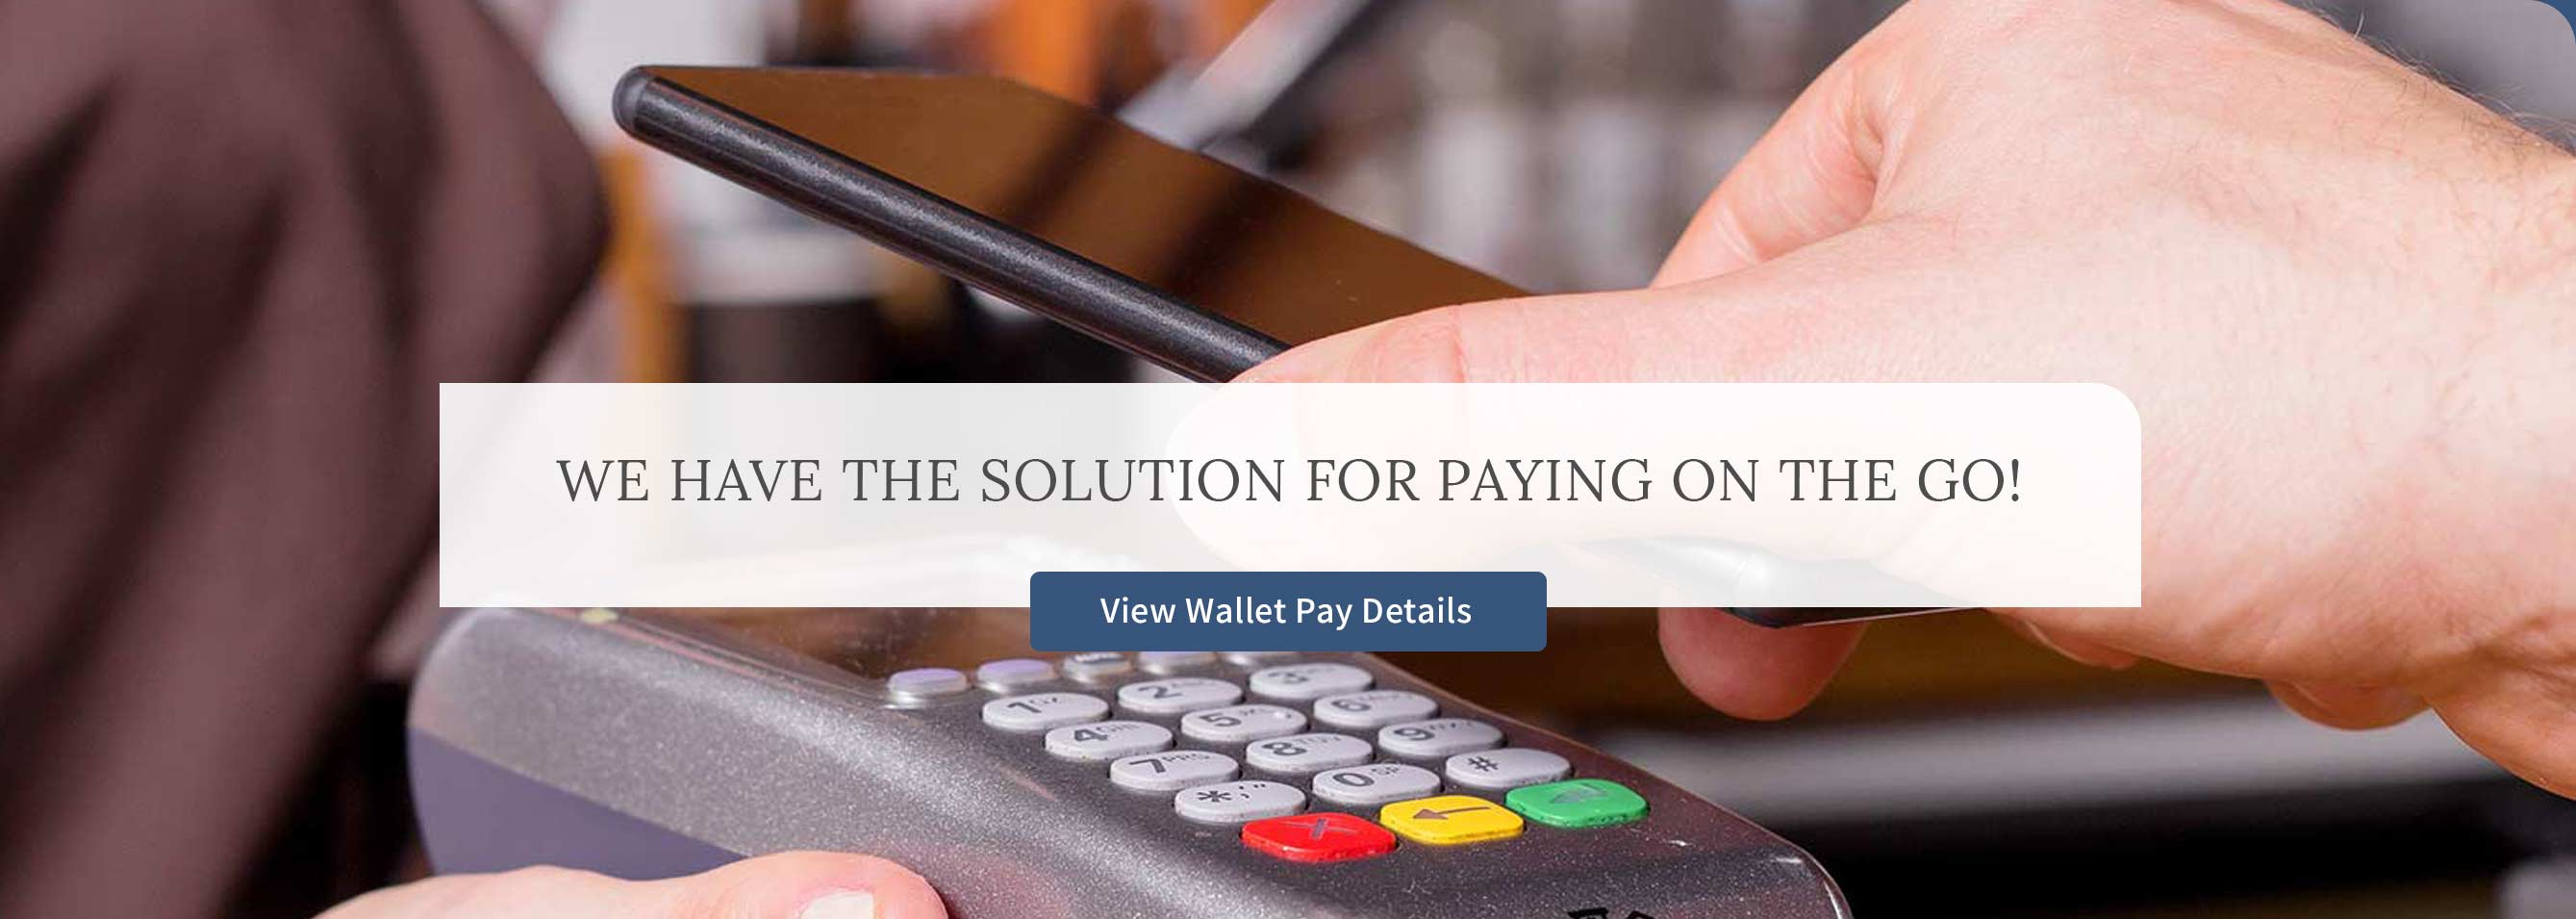 We have the solution for paying on the go! View Wallet Pay details.